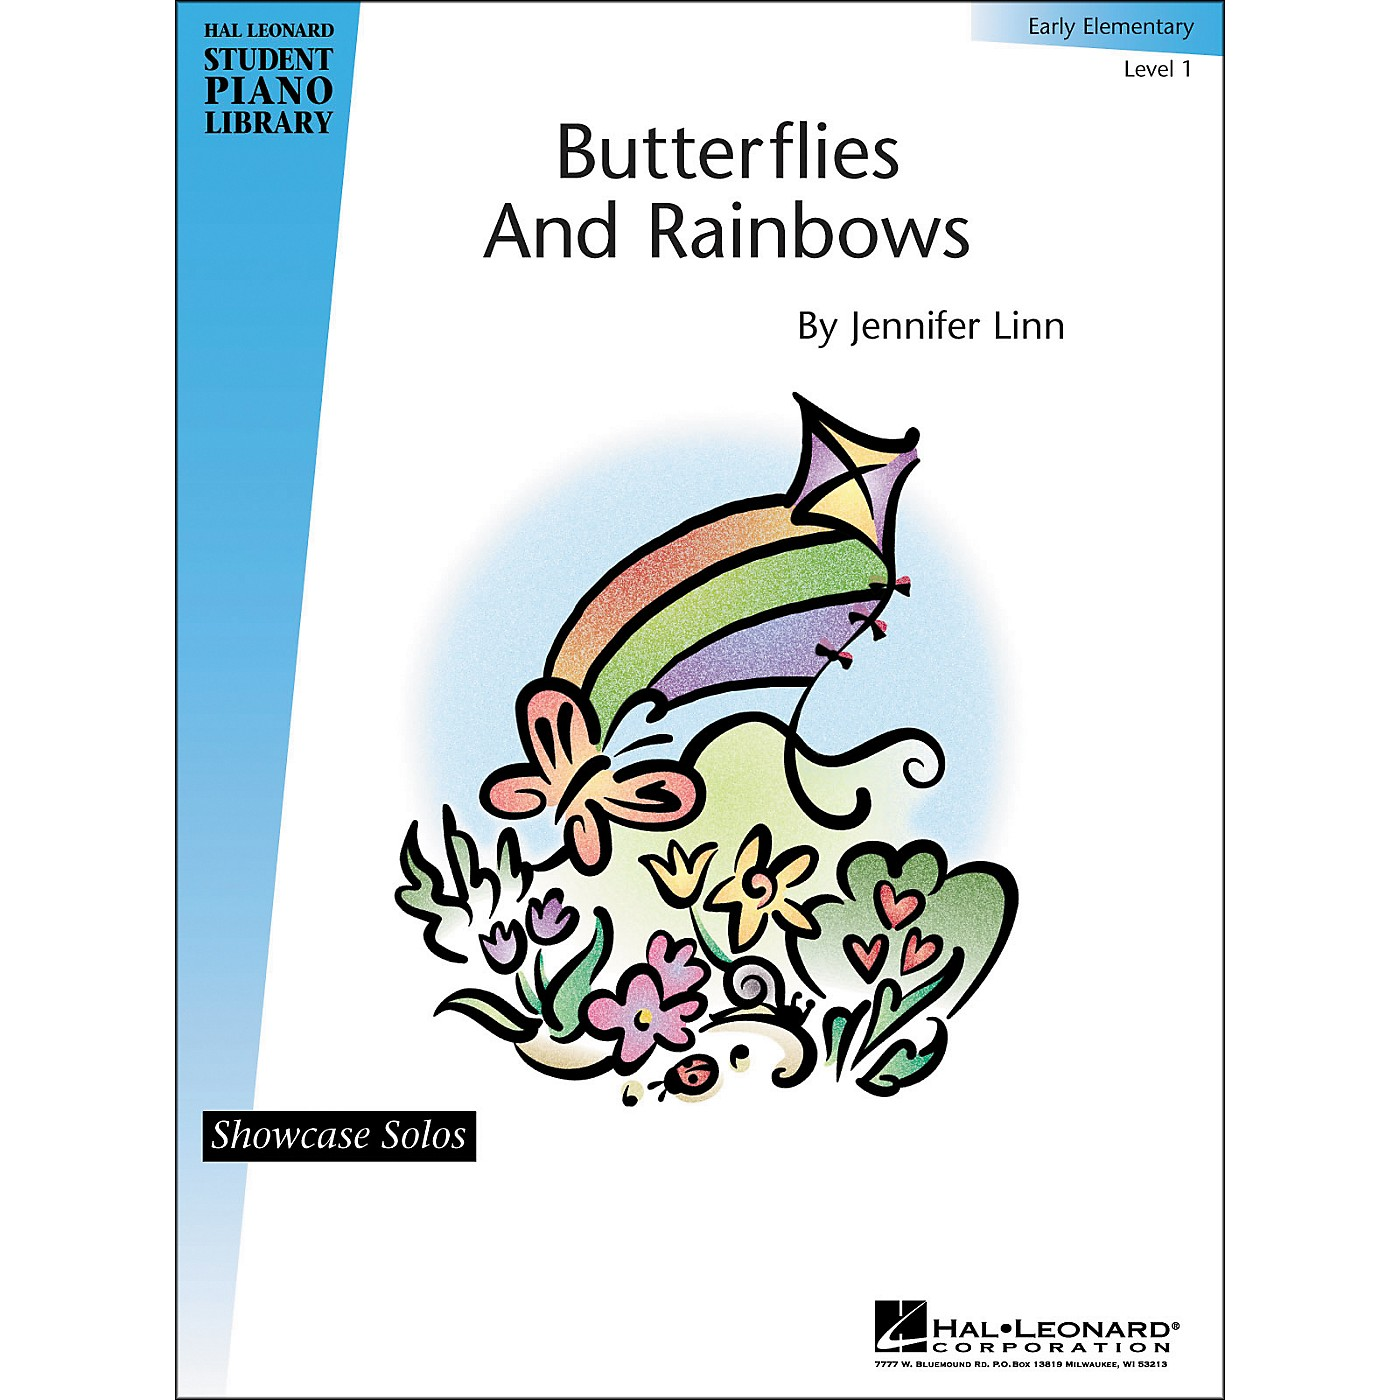 Hal Leonard Butterflies And Rainbows Early Elementary Level 1 Showcase Solos Hal Leonard Student Piano Library thumbnail